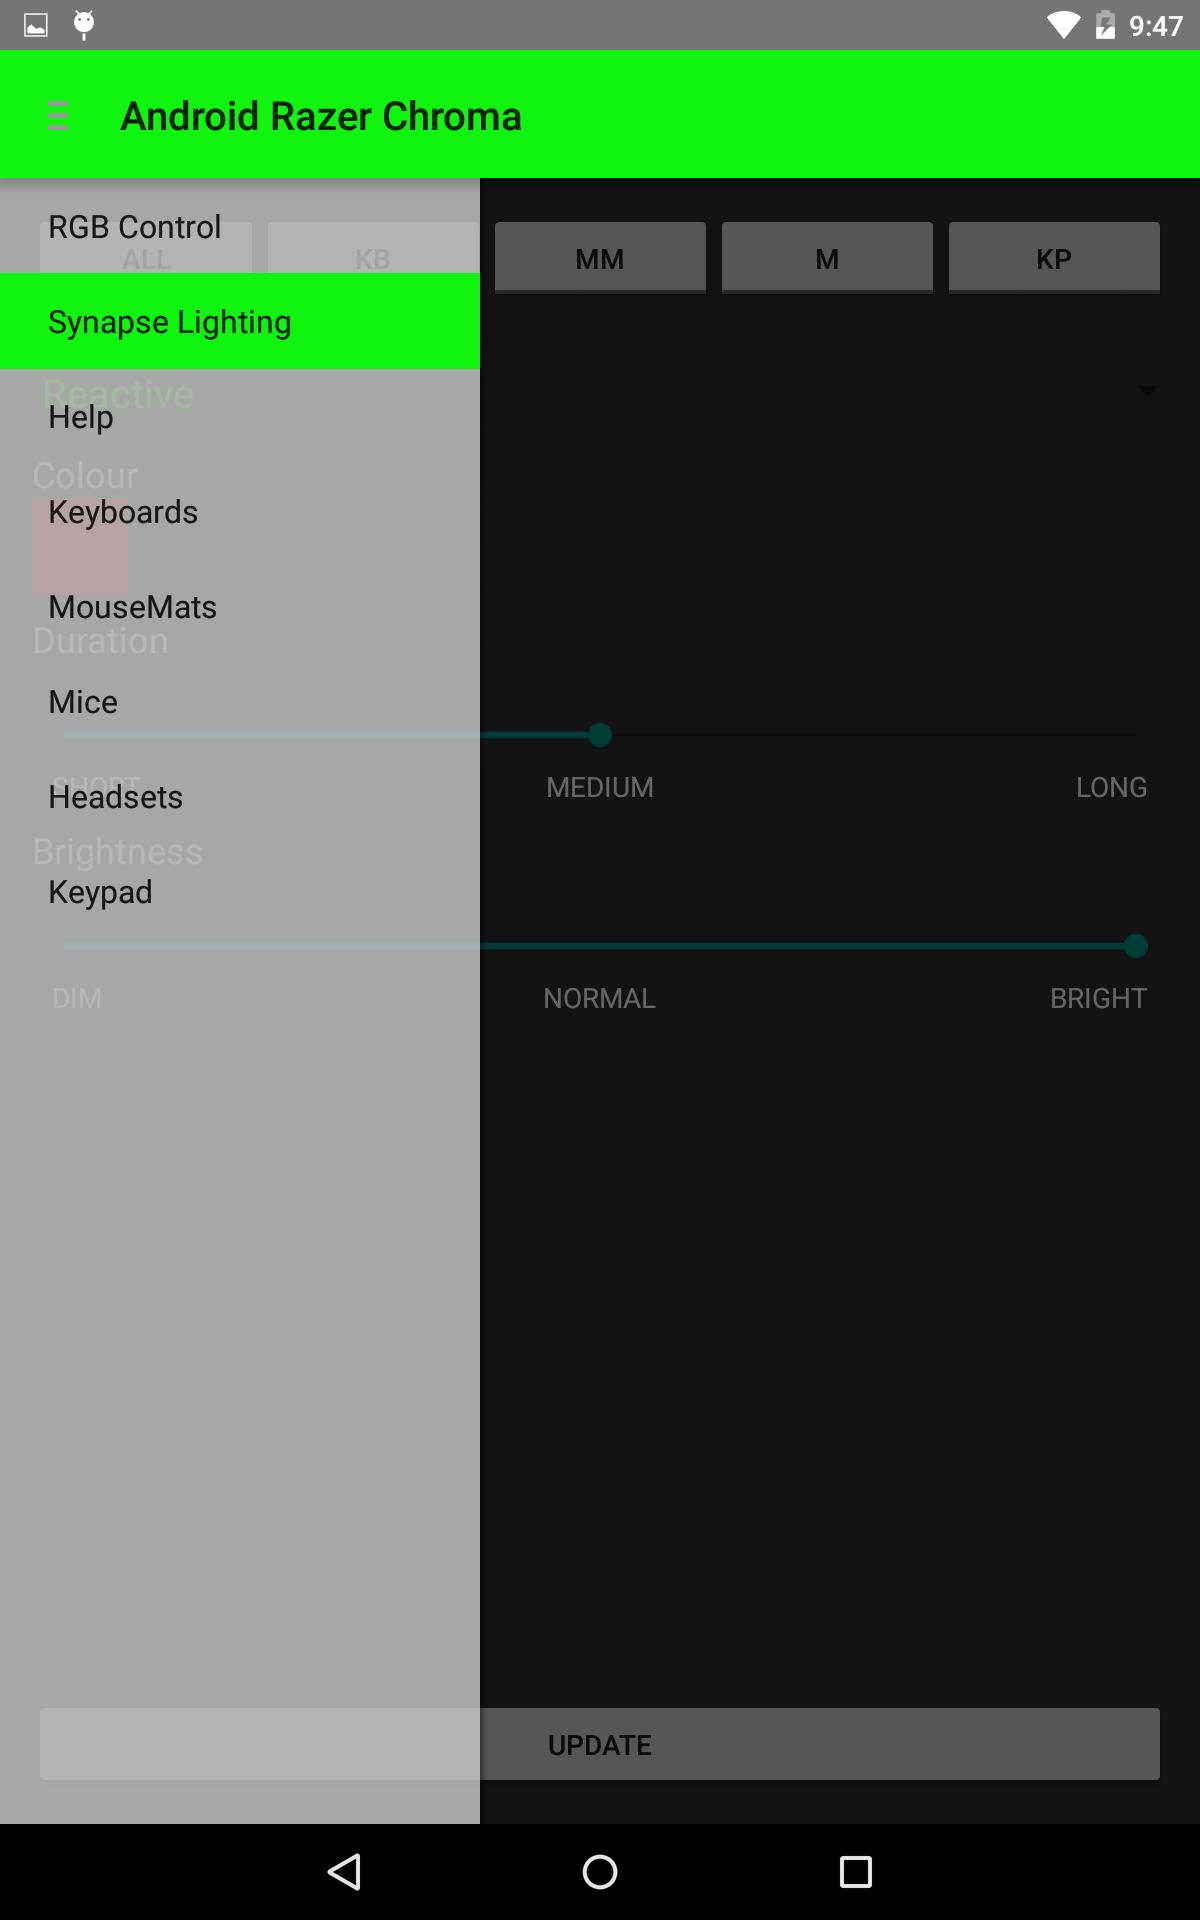 Android Razer Configurator for Android - APK Download